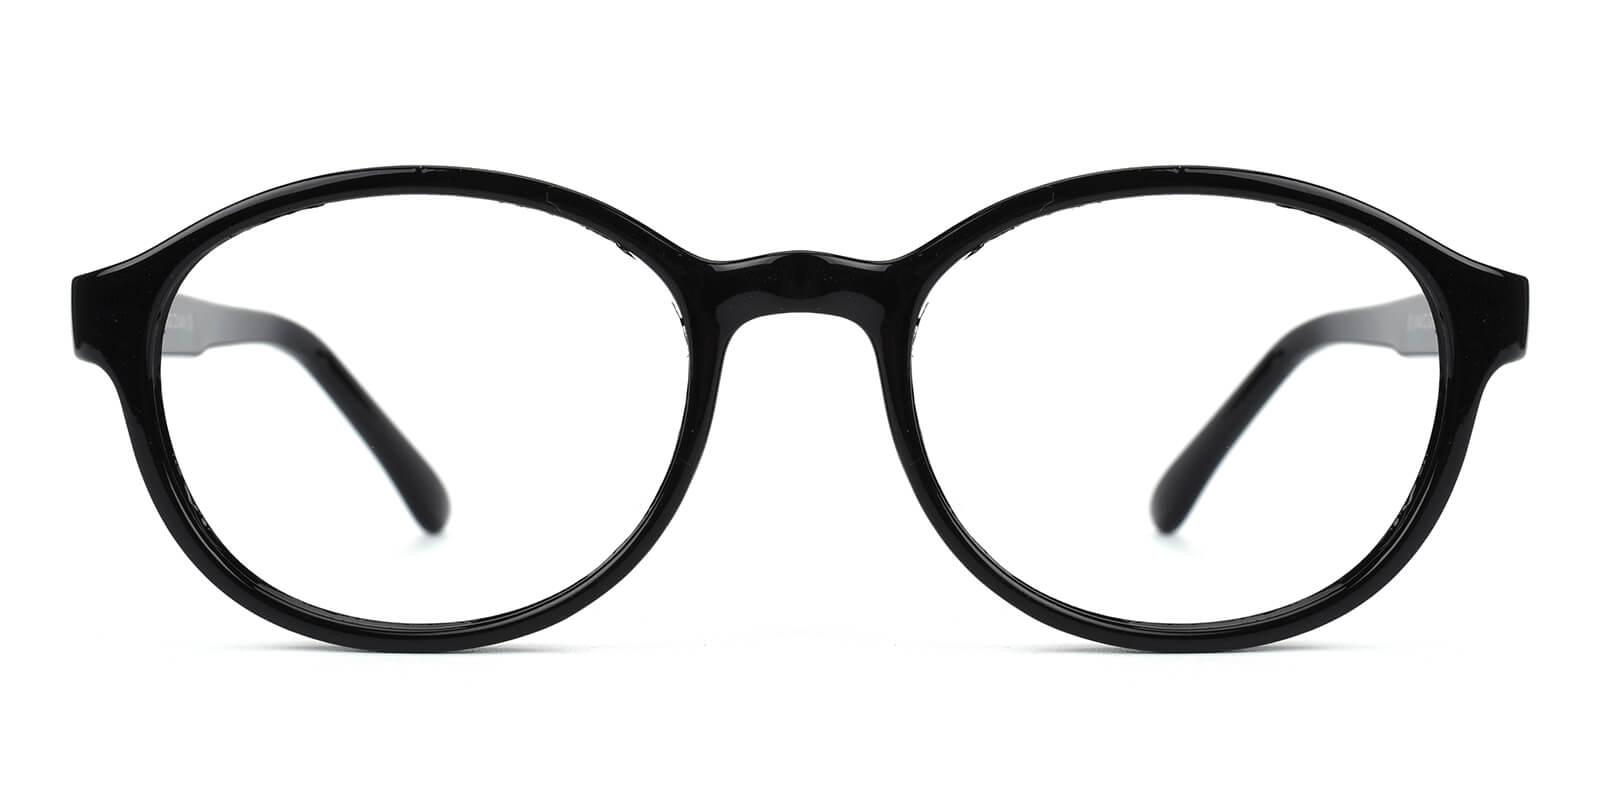 Achiever-Black-Round-Plastic-Eyeglasses-additional2